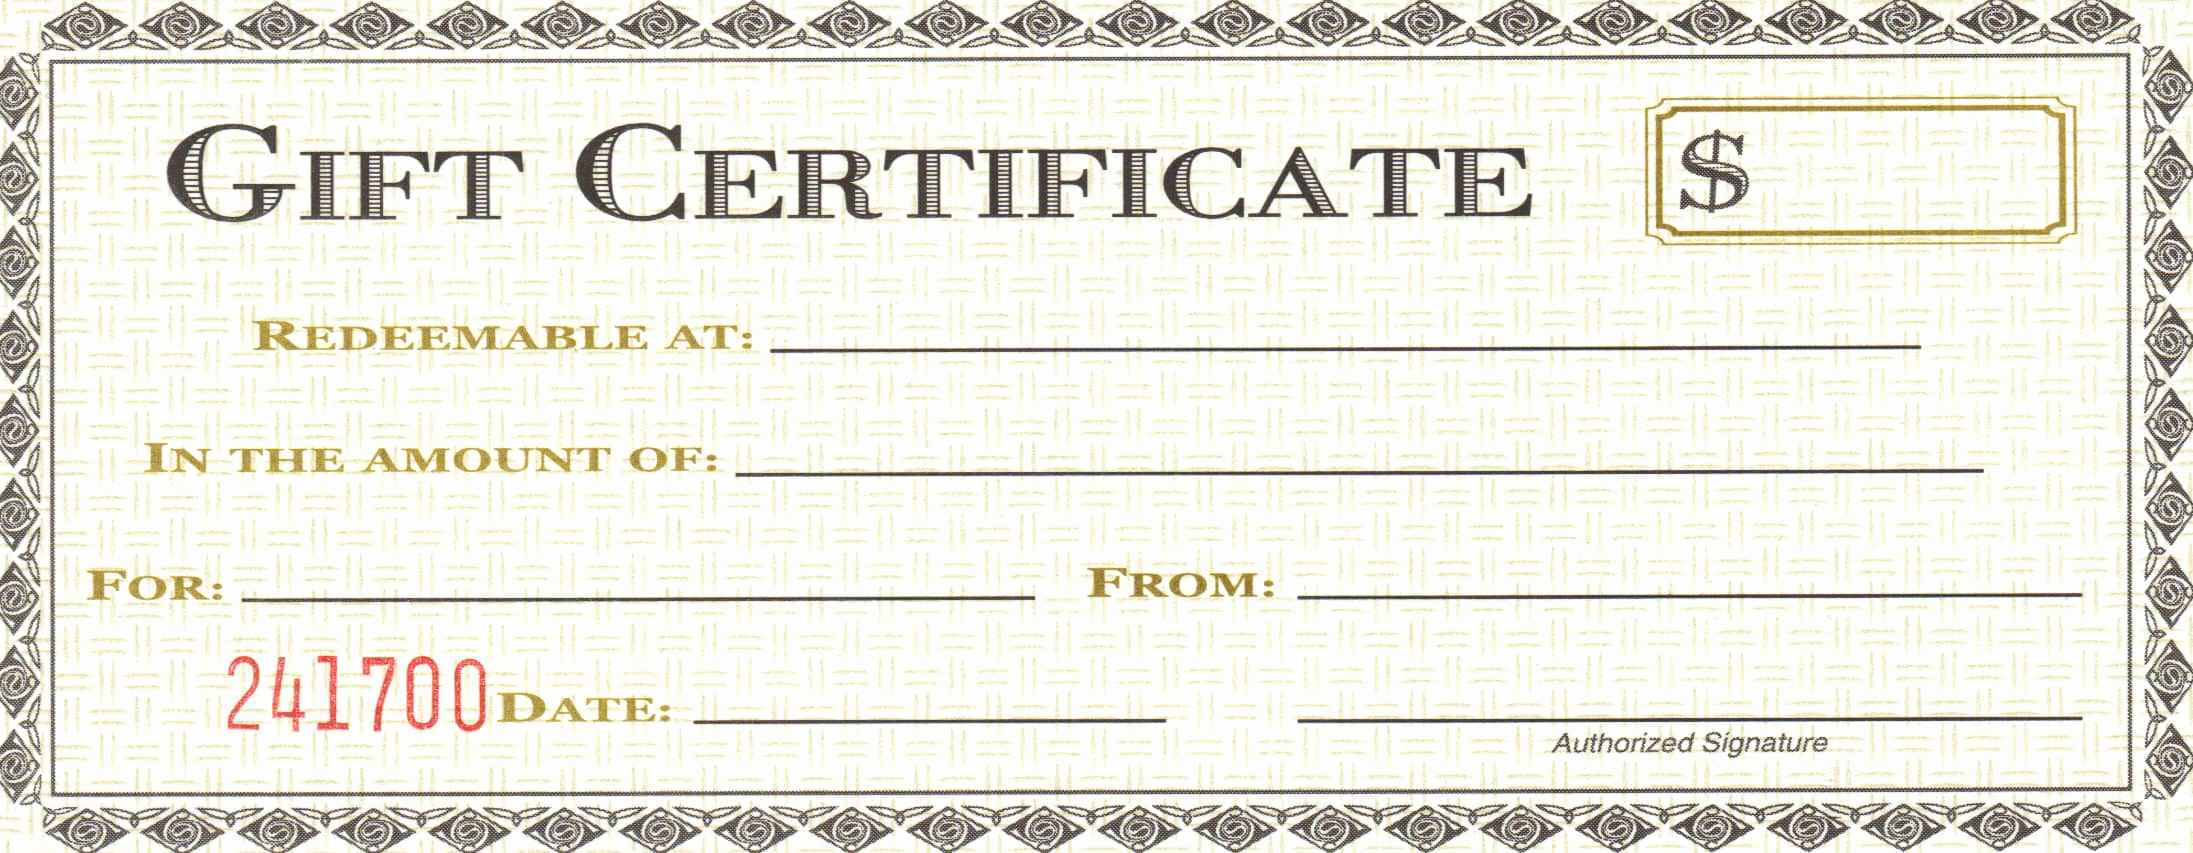 Template for A Gift Certificate Beautiful 18 Gift Certificate Templates Excel Pdf formats